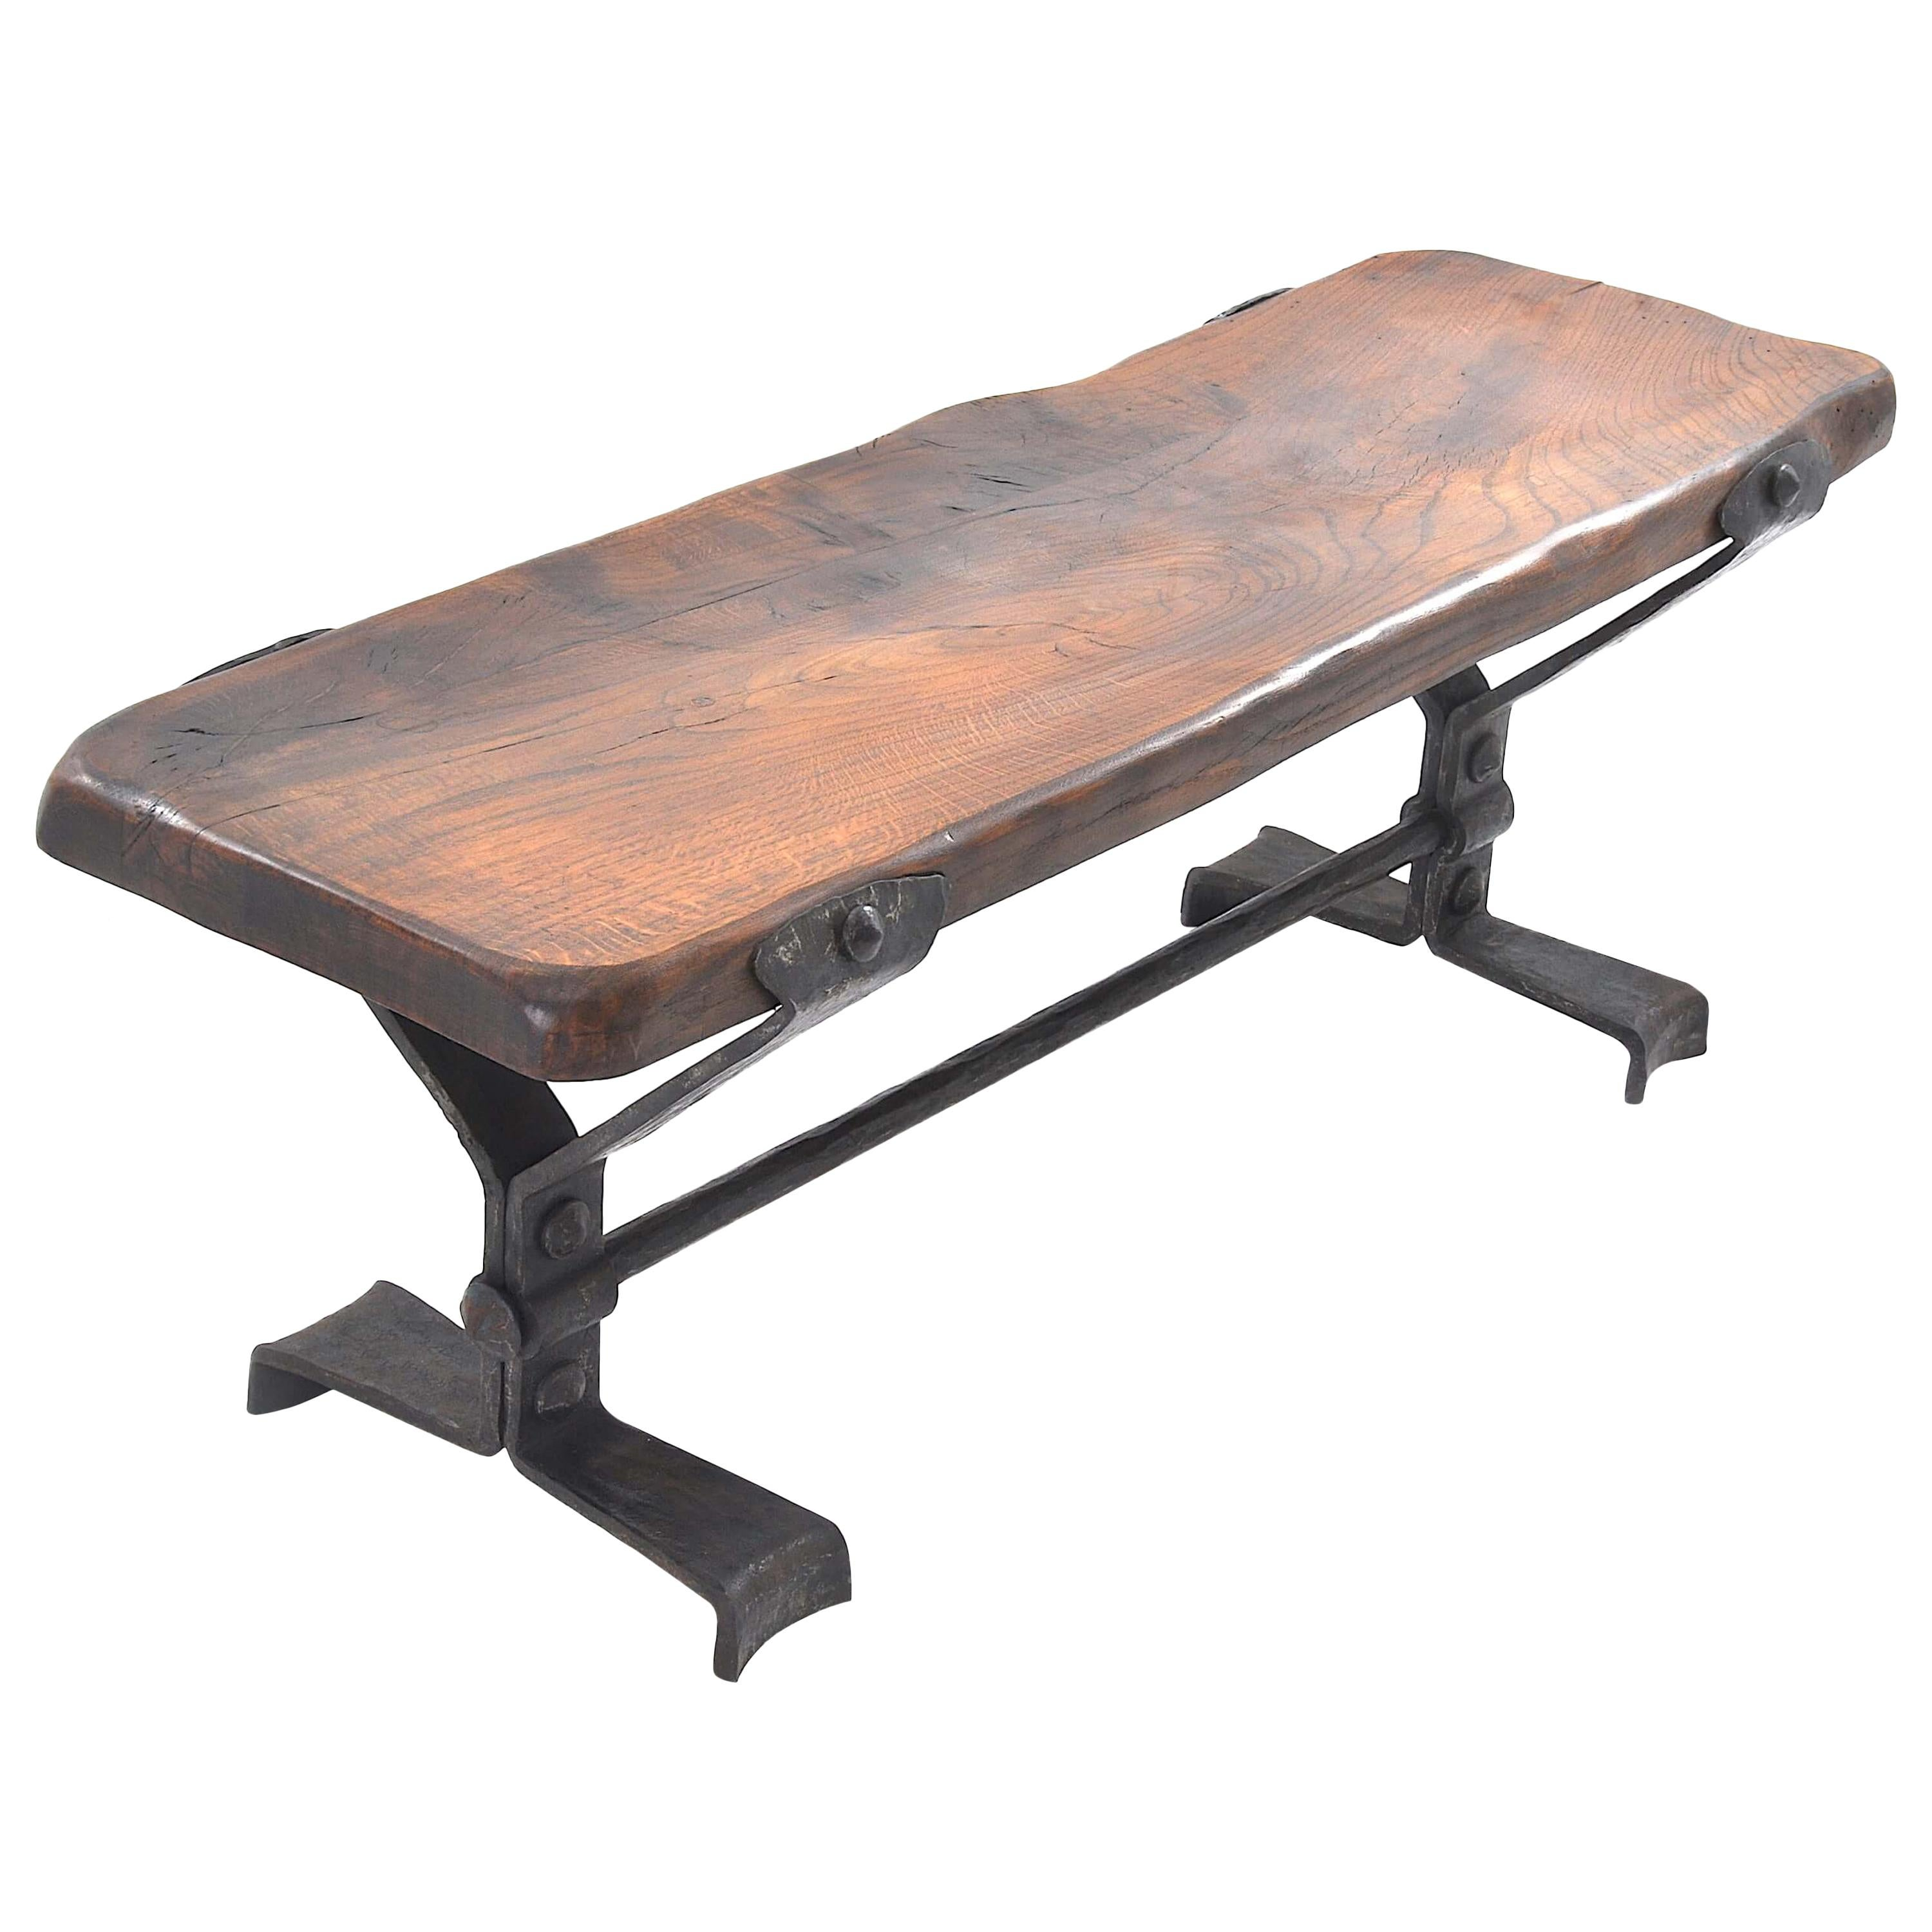 Bench in Solid Wood and Wrought Iron, France, 1950